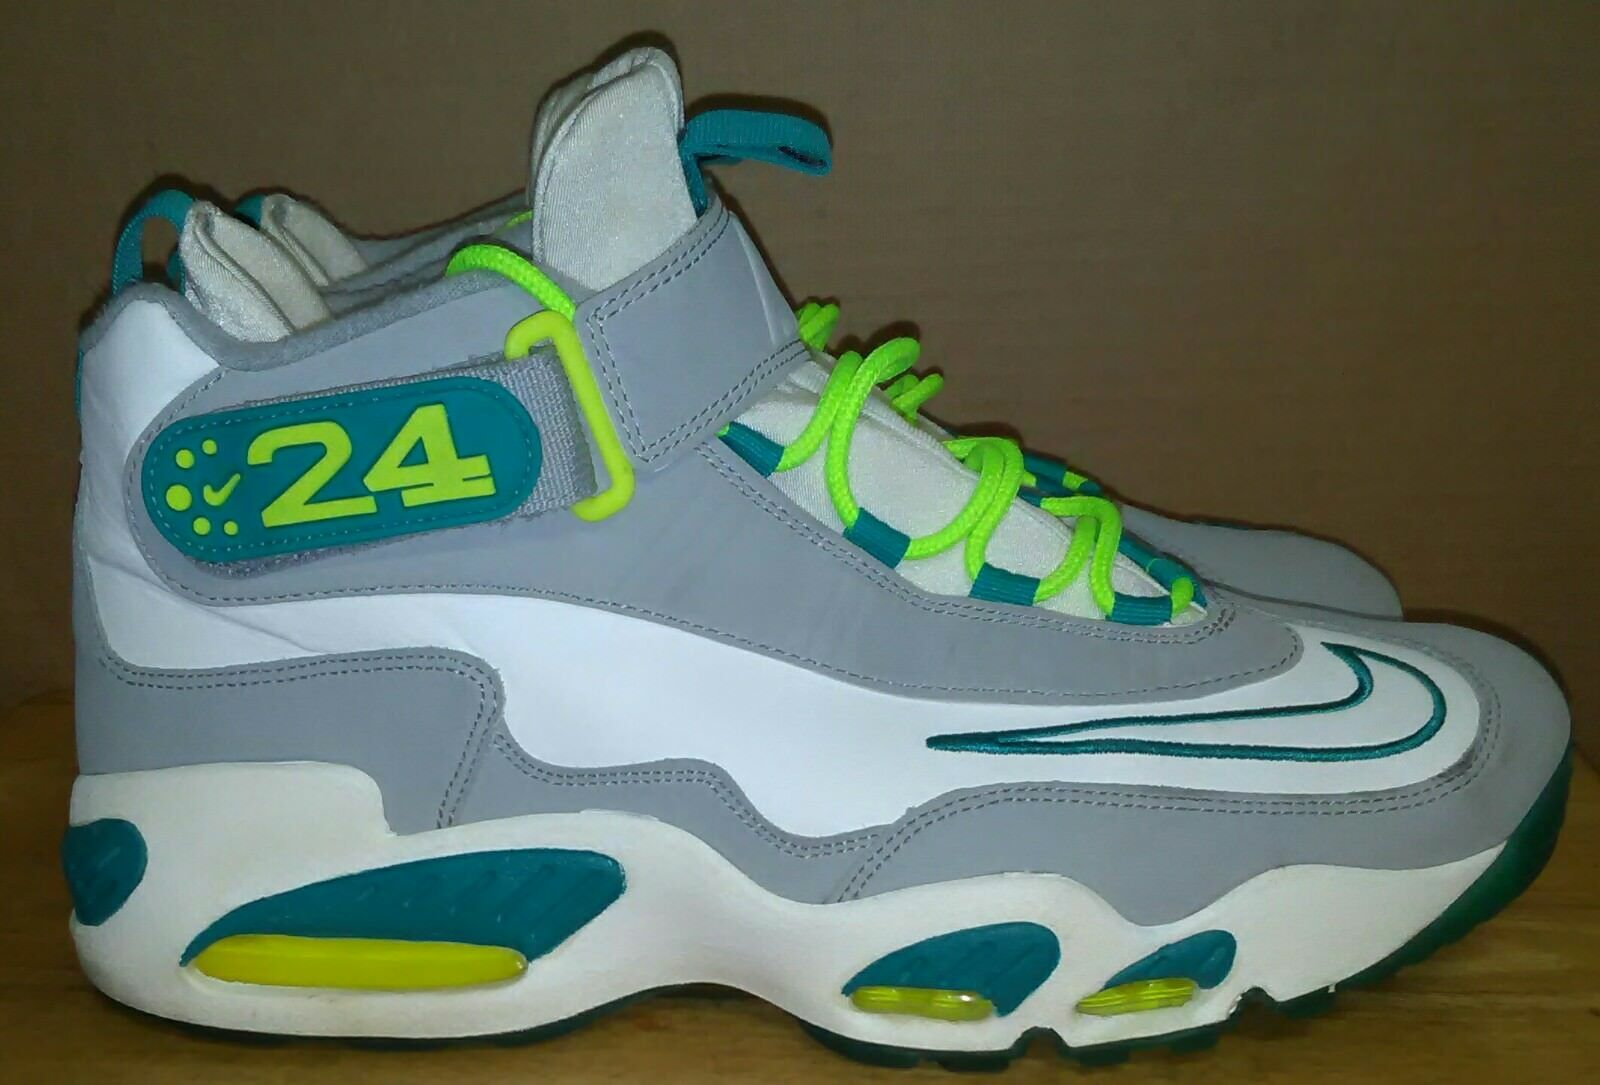 DS Nike Air Griffey 1 white neon turbo green 354912 104 . Size US 13